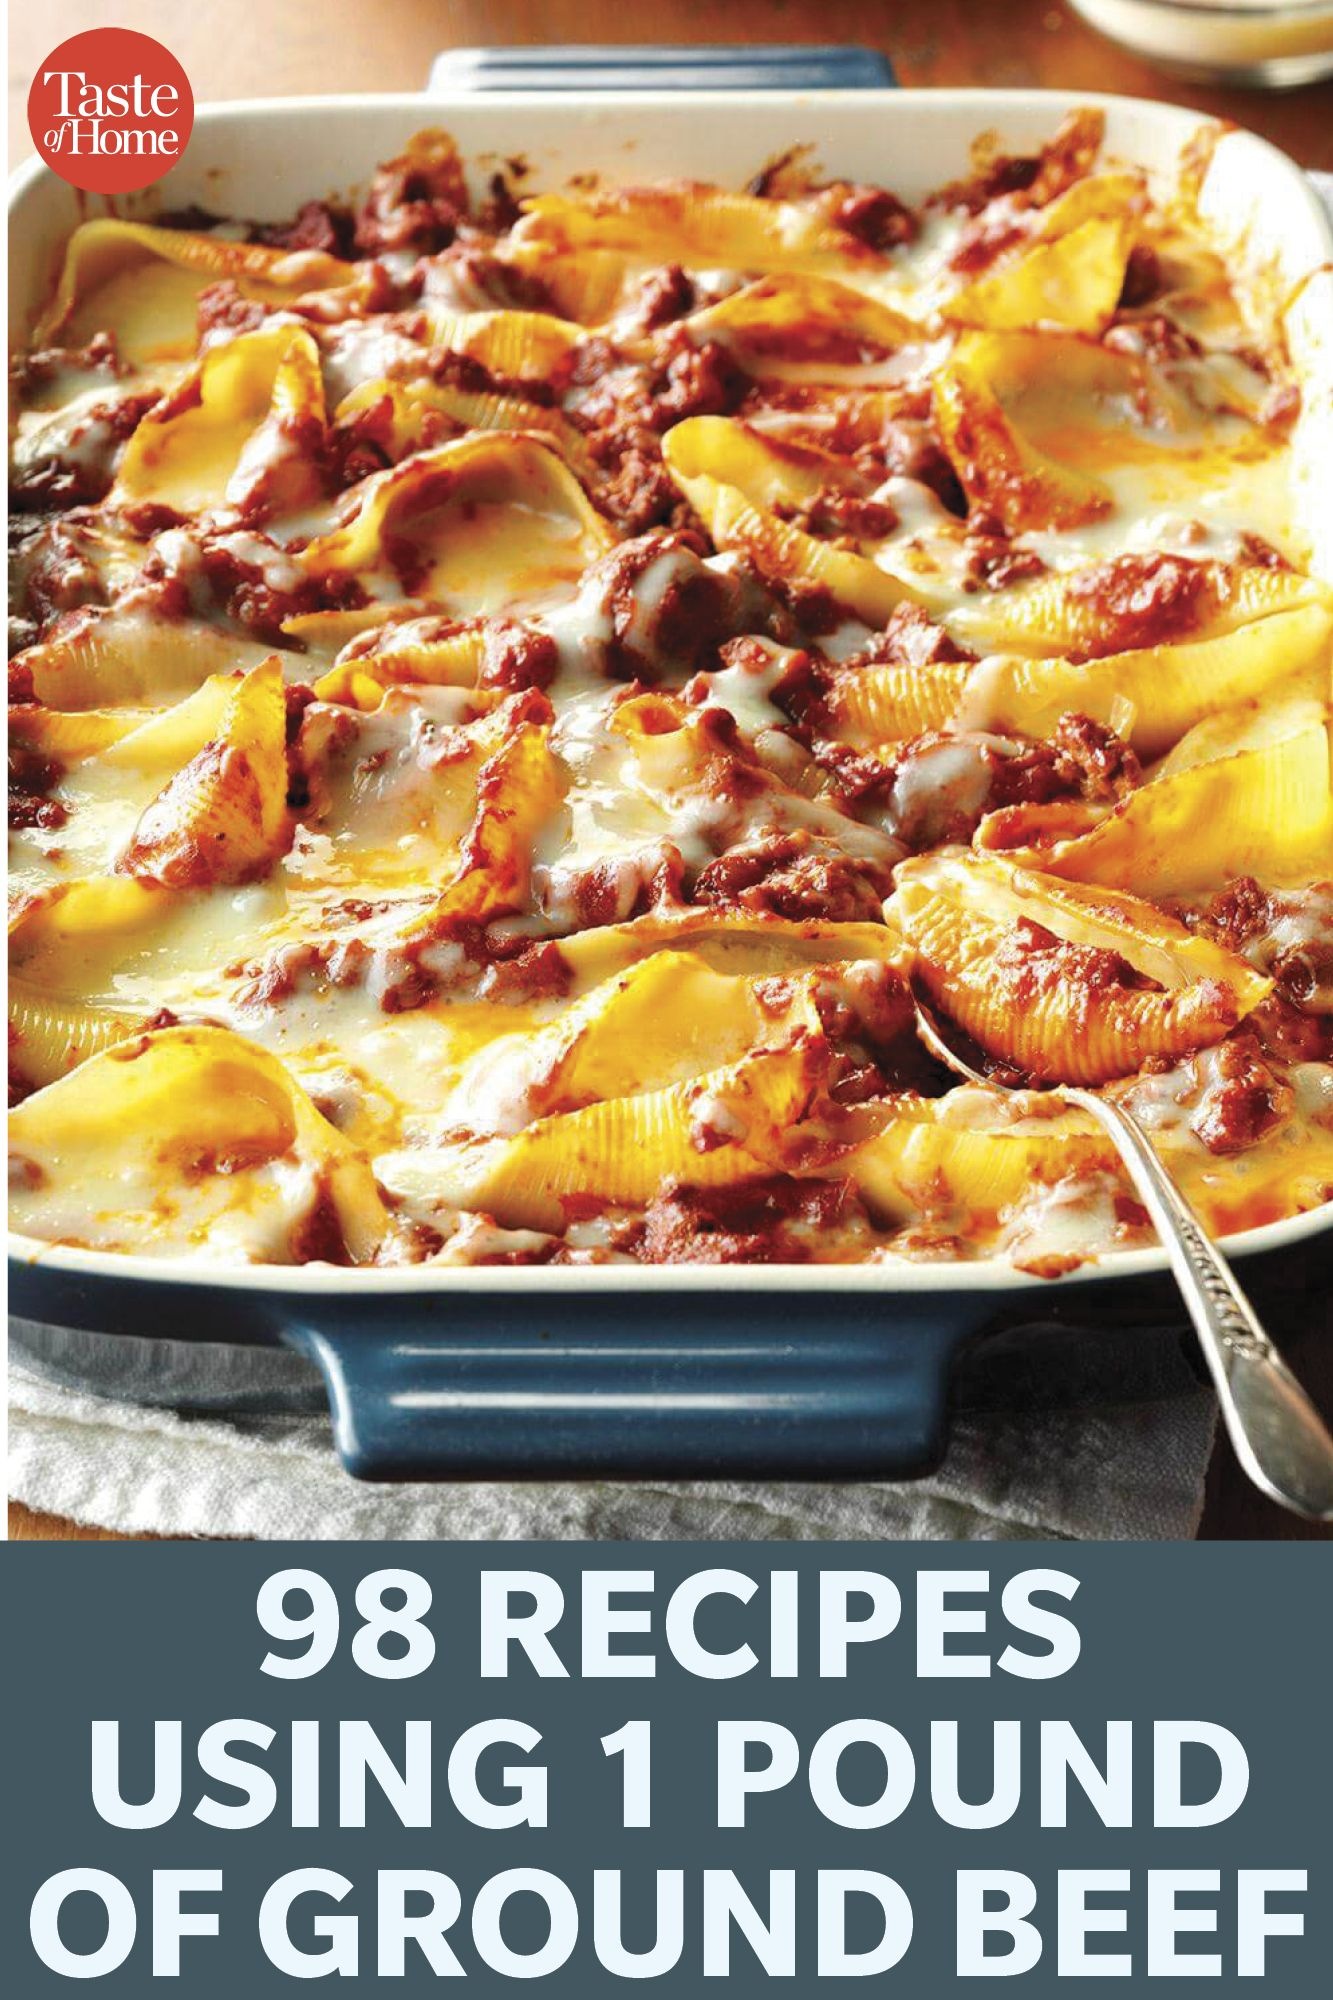 98 Recipes Using 1 Pound Of Ground Beef In 2020 Dinner With Ground Beef Ground Beef Recipes For Dinner Ground Meat Recipes